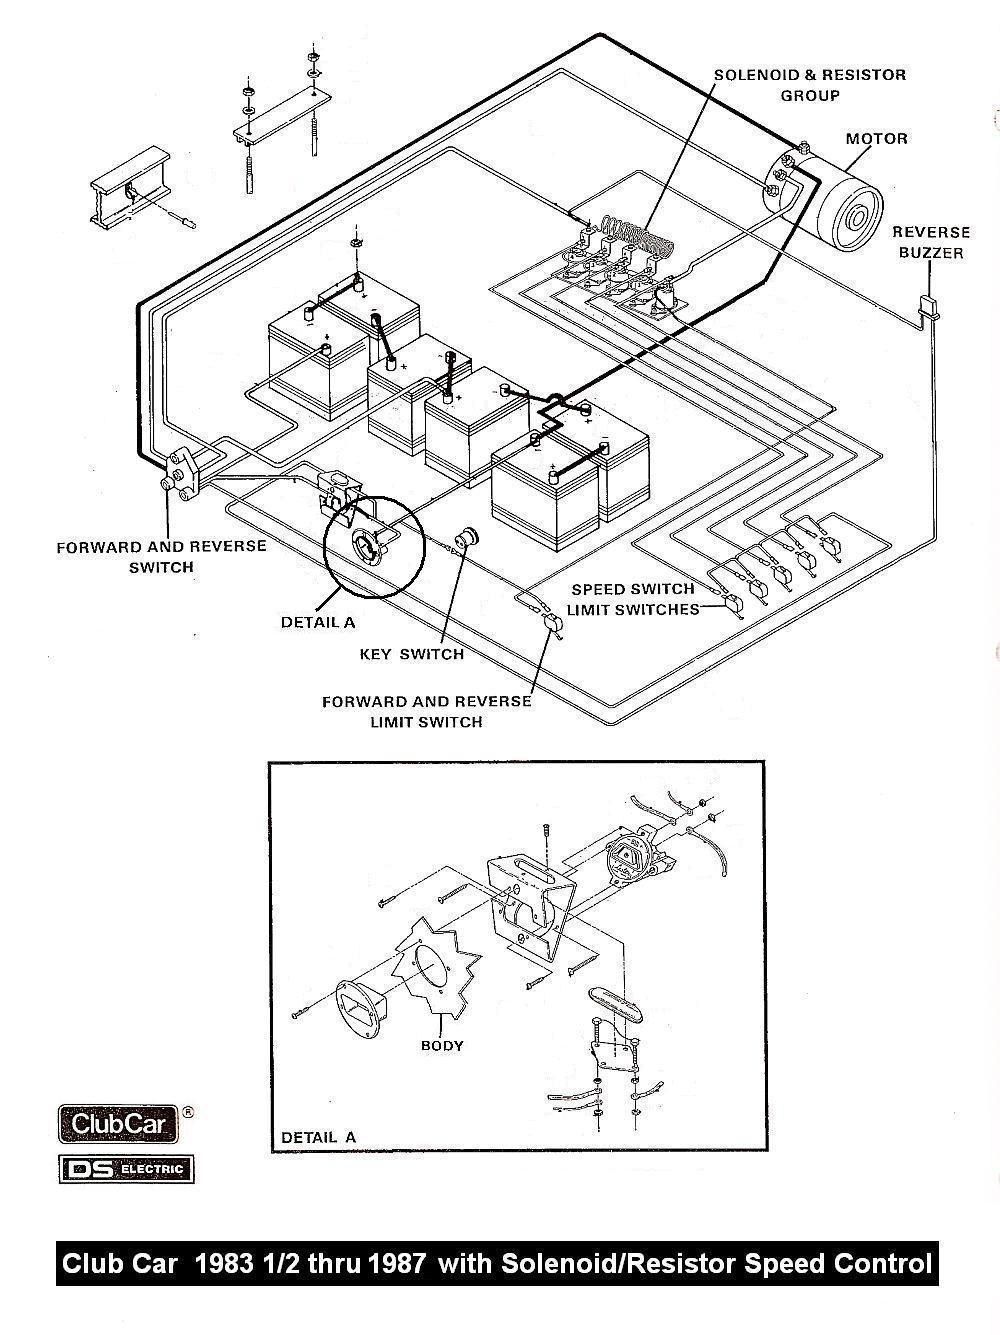 1985 Club Car Forward Reverse Switch Wiring Diagram | Manual E-Books - Club Car Forward Reverse Switch Wiring Diagram